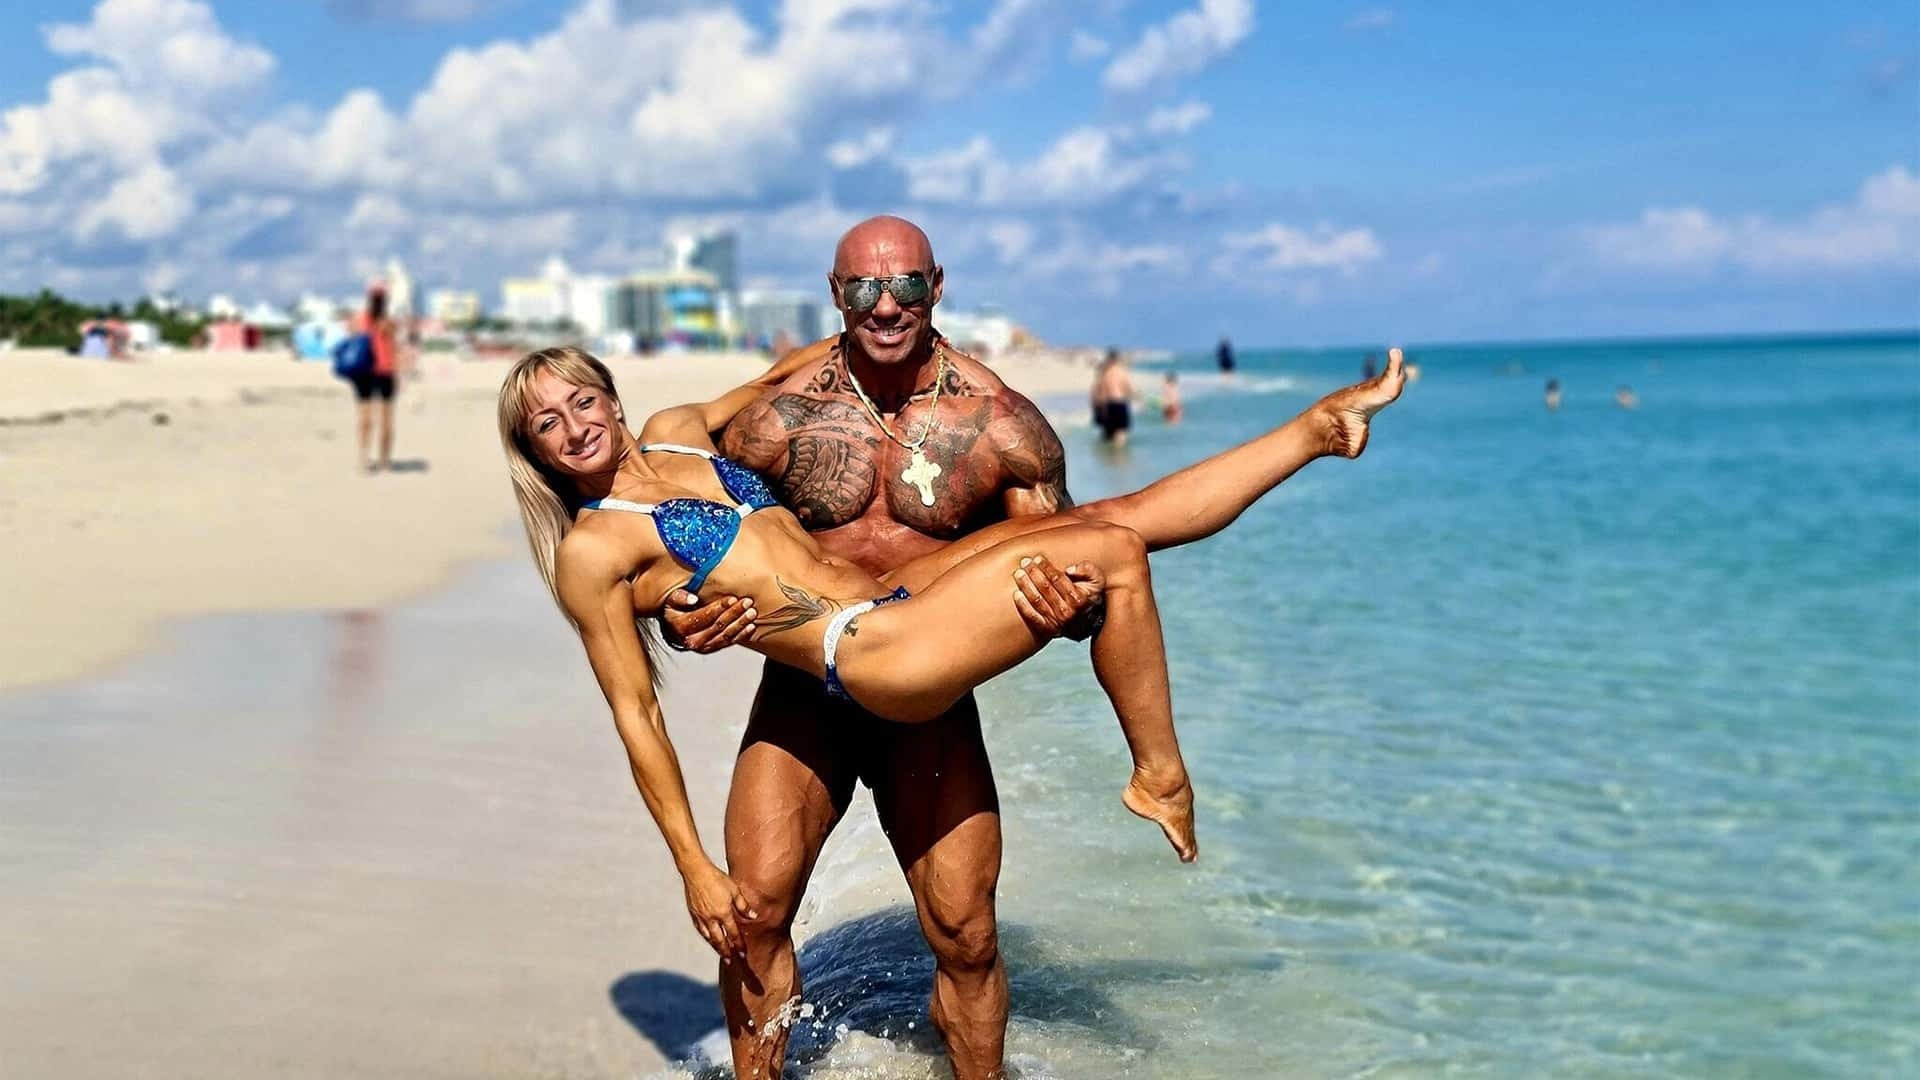 Tose Zafirov and Gabriela Zafirova at the beach where Tose is holding Gabriela in his hands. Gabirela is wearing blue bikini and she is smiling, while Tose is wearing sunglasses on his eyes, and a big golden necklace .